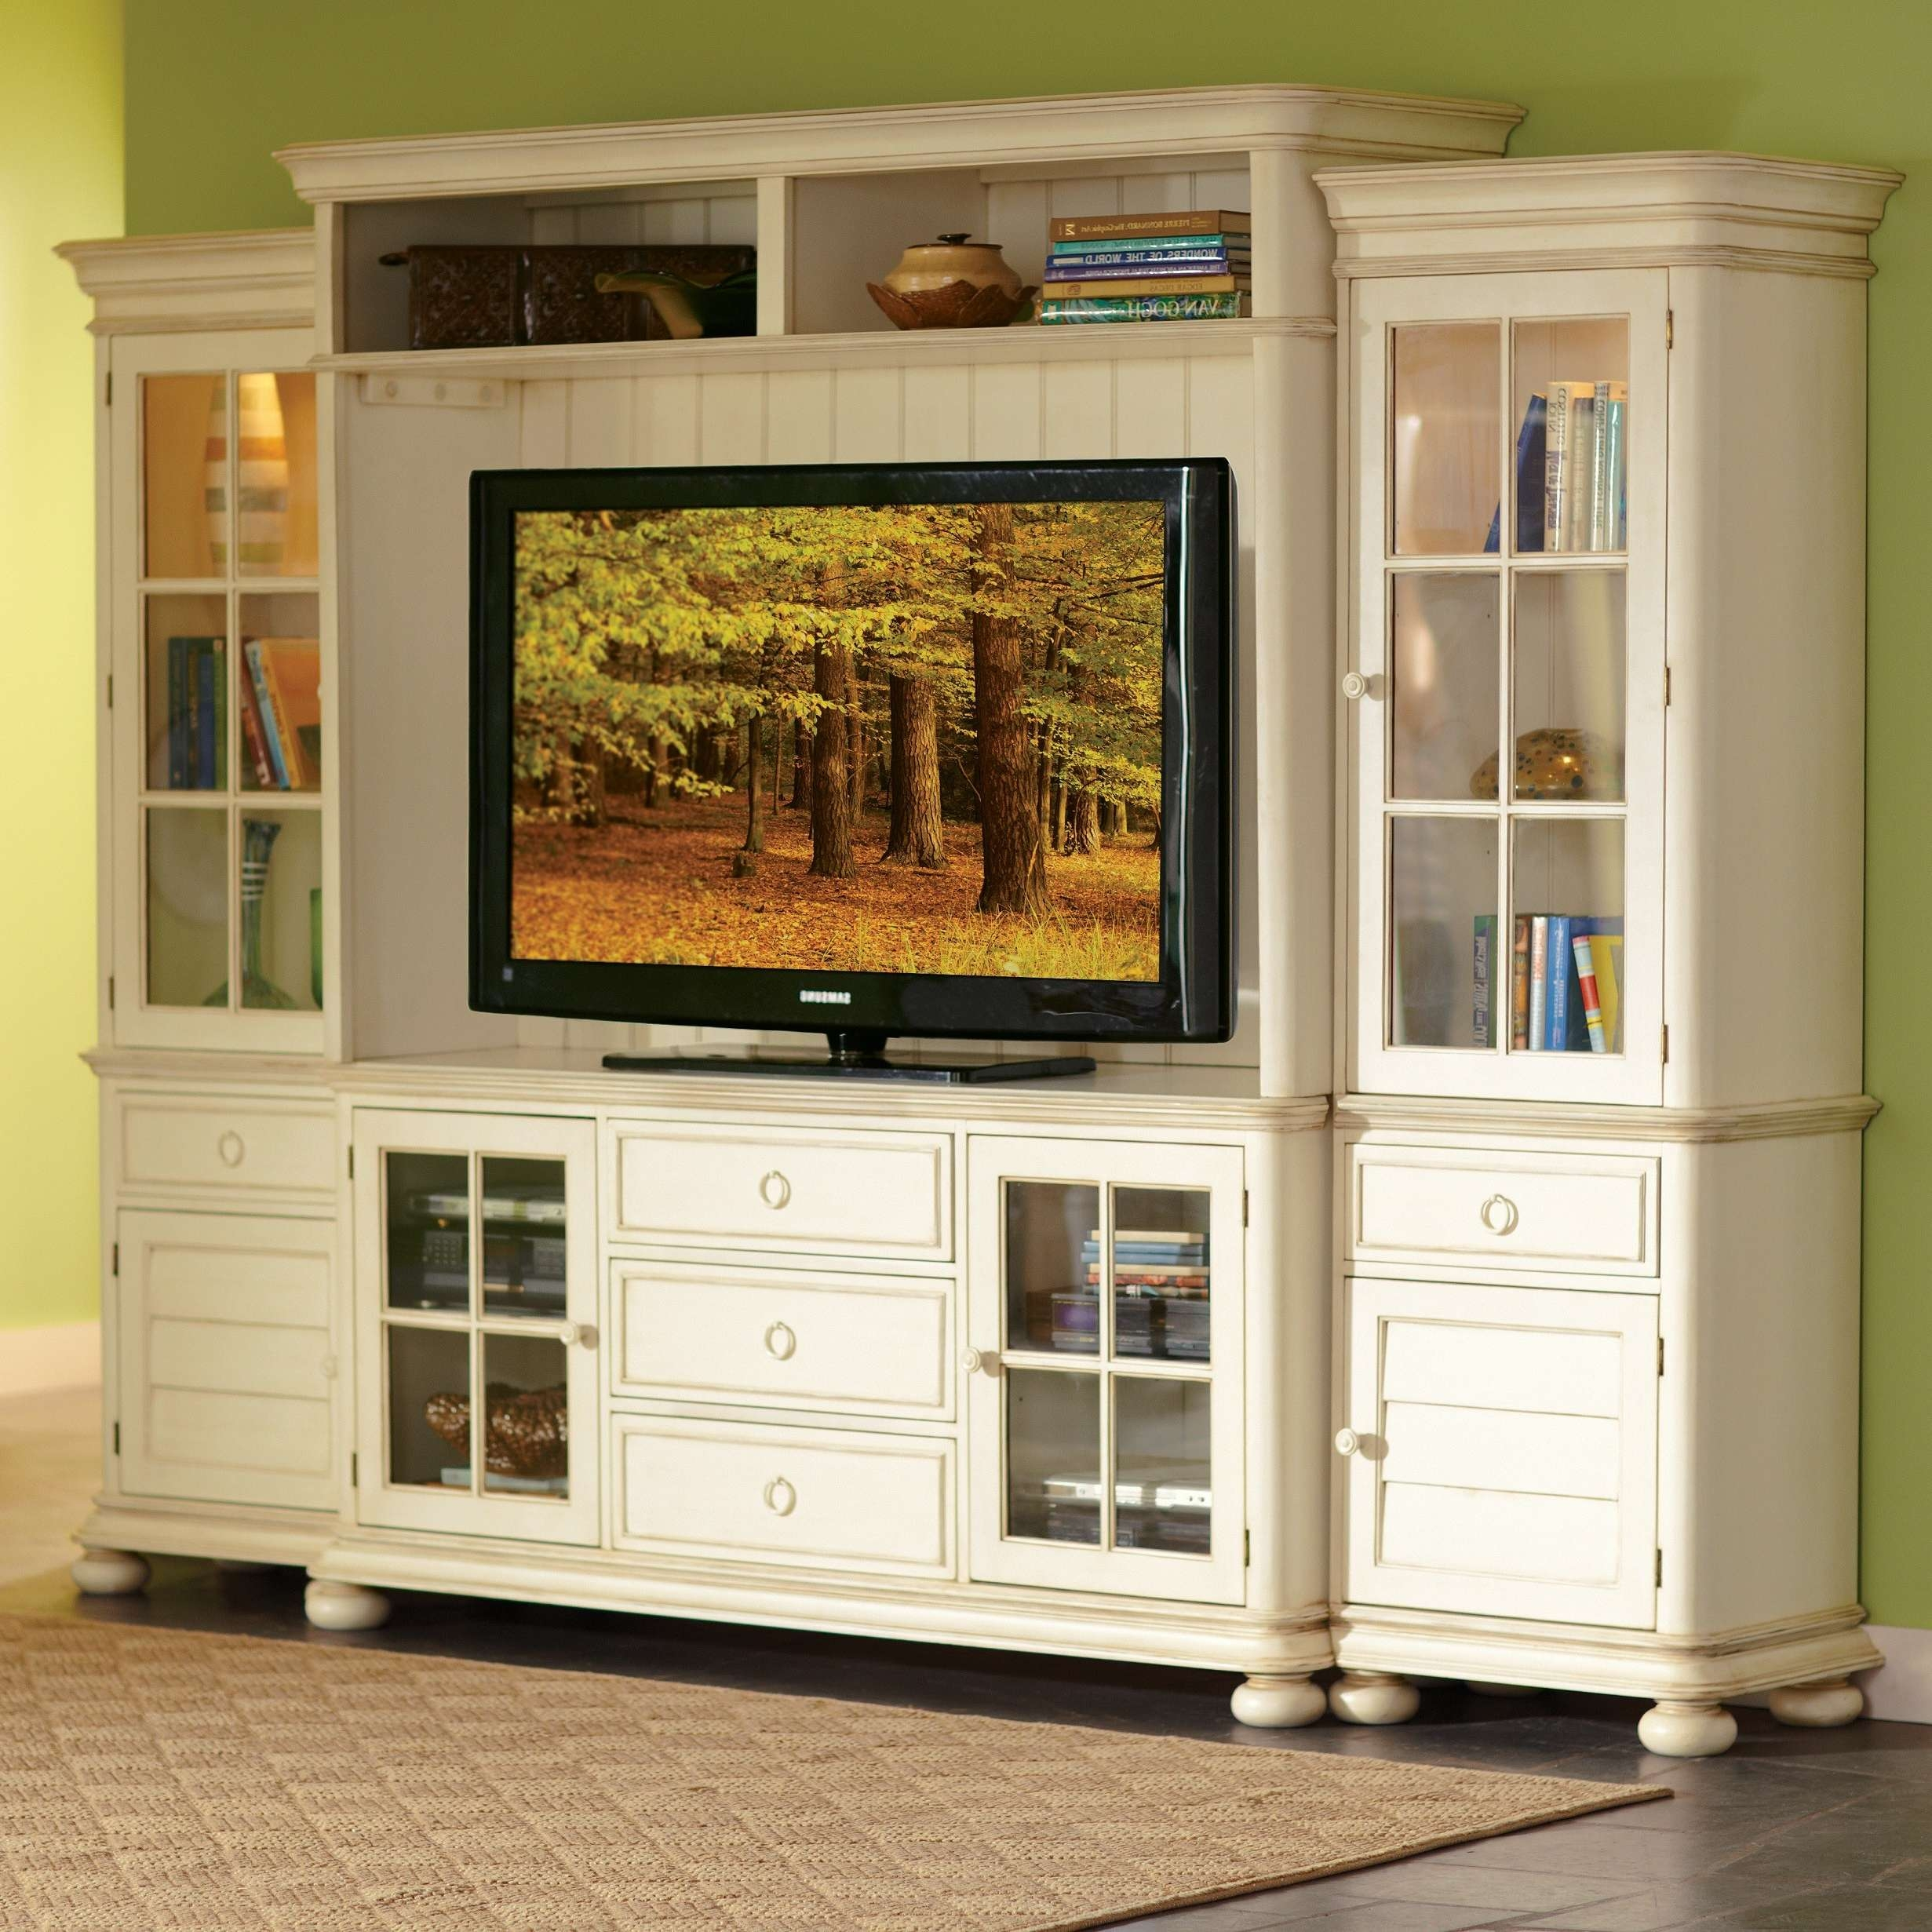 Vintage White Mahogany Wood Media Cabinet With Glass Doors Storage Intended For Corner Tv Cabinets With Glass Doors (View 14 of 20)